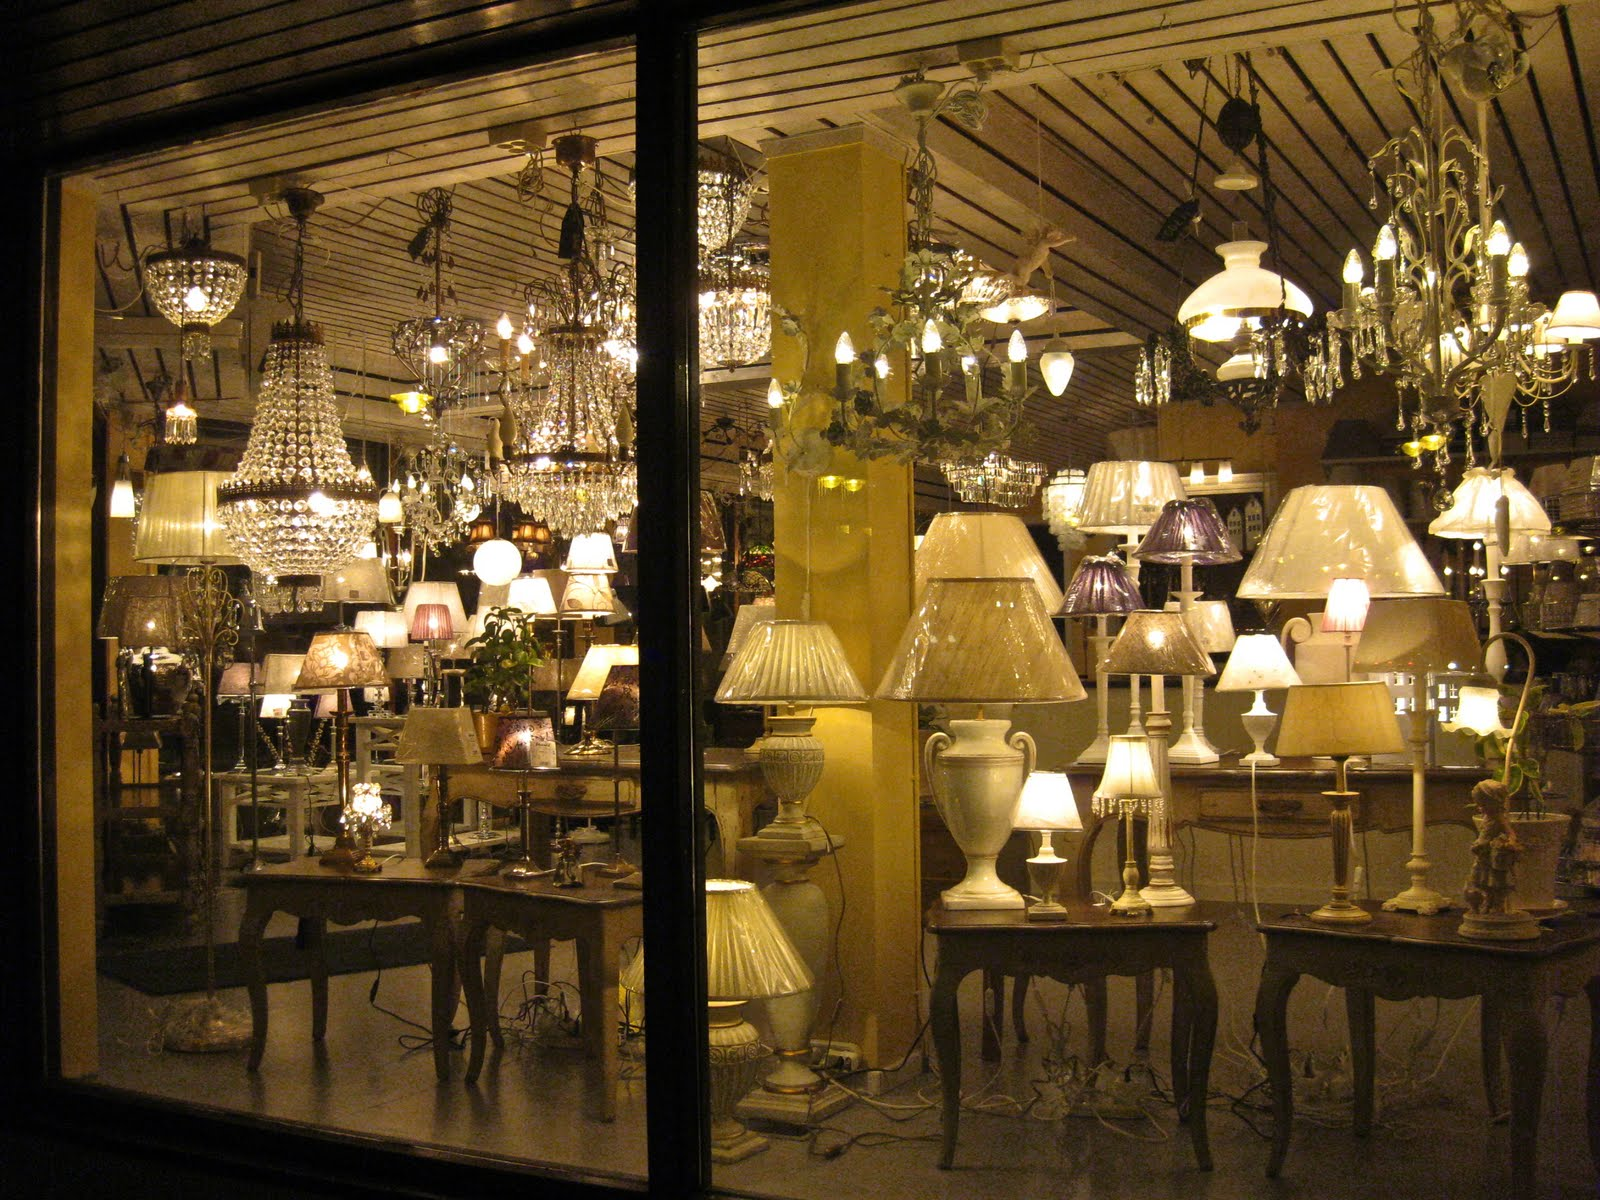 Nice I Like The Light That Streams Through The Window Of This Lamp Store At  Night. I Walked Past It One Evening And Wanted To Take A Photo Of It. Here  It Is!